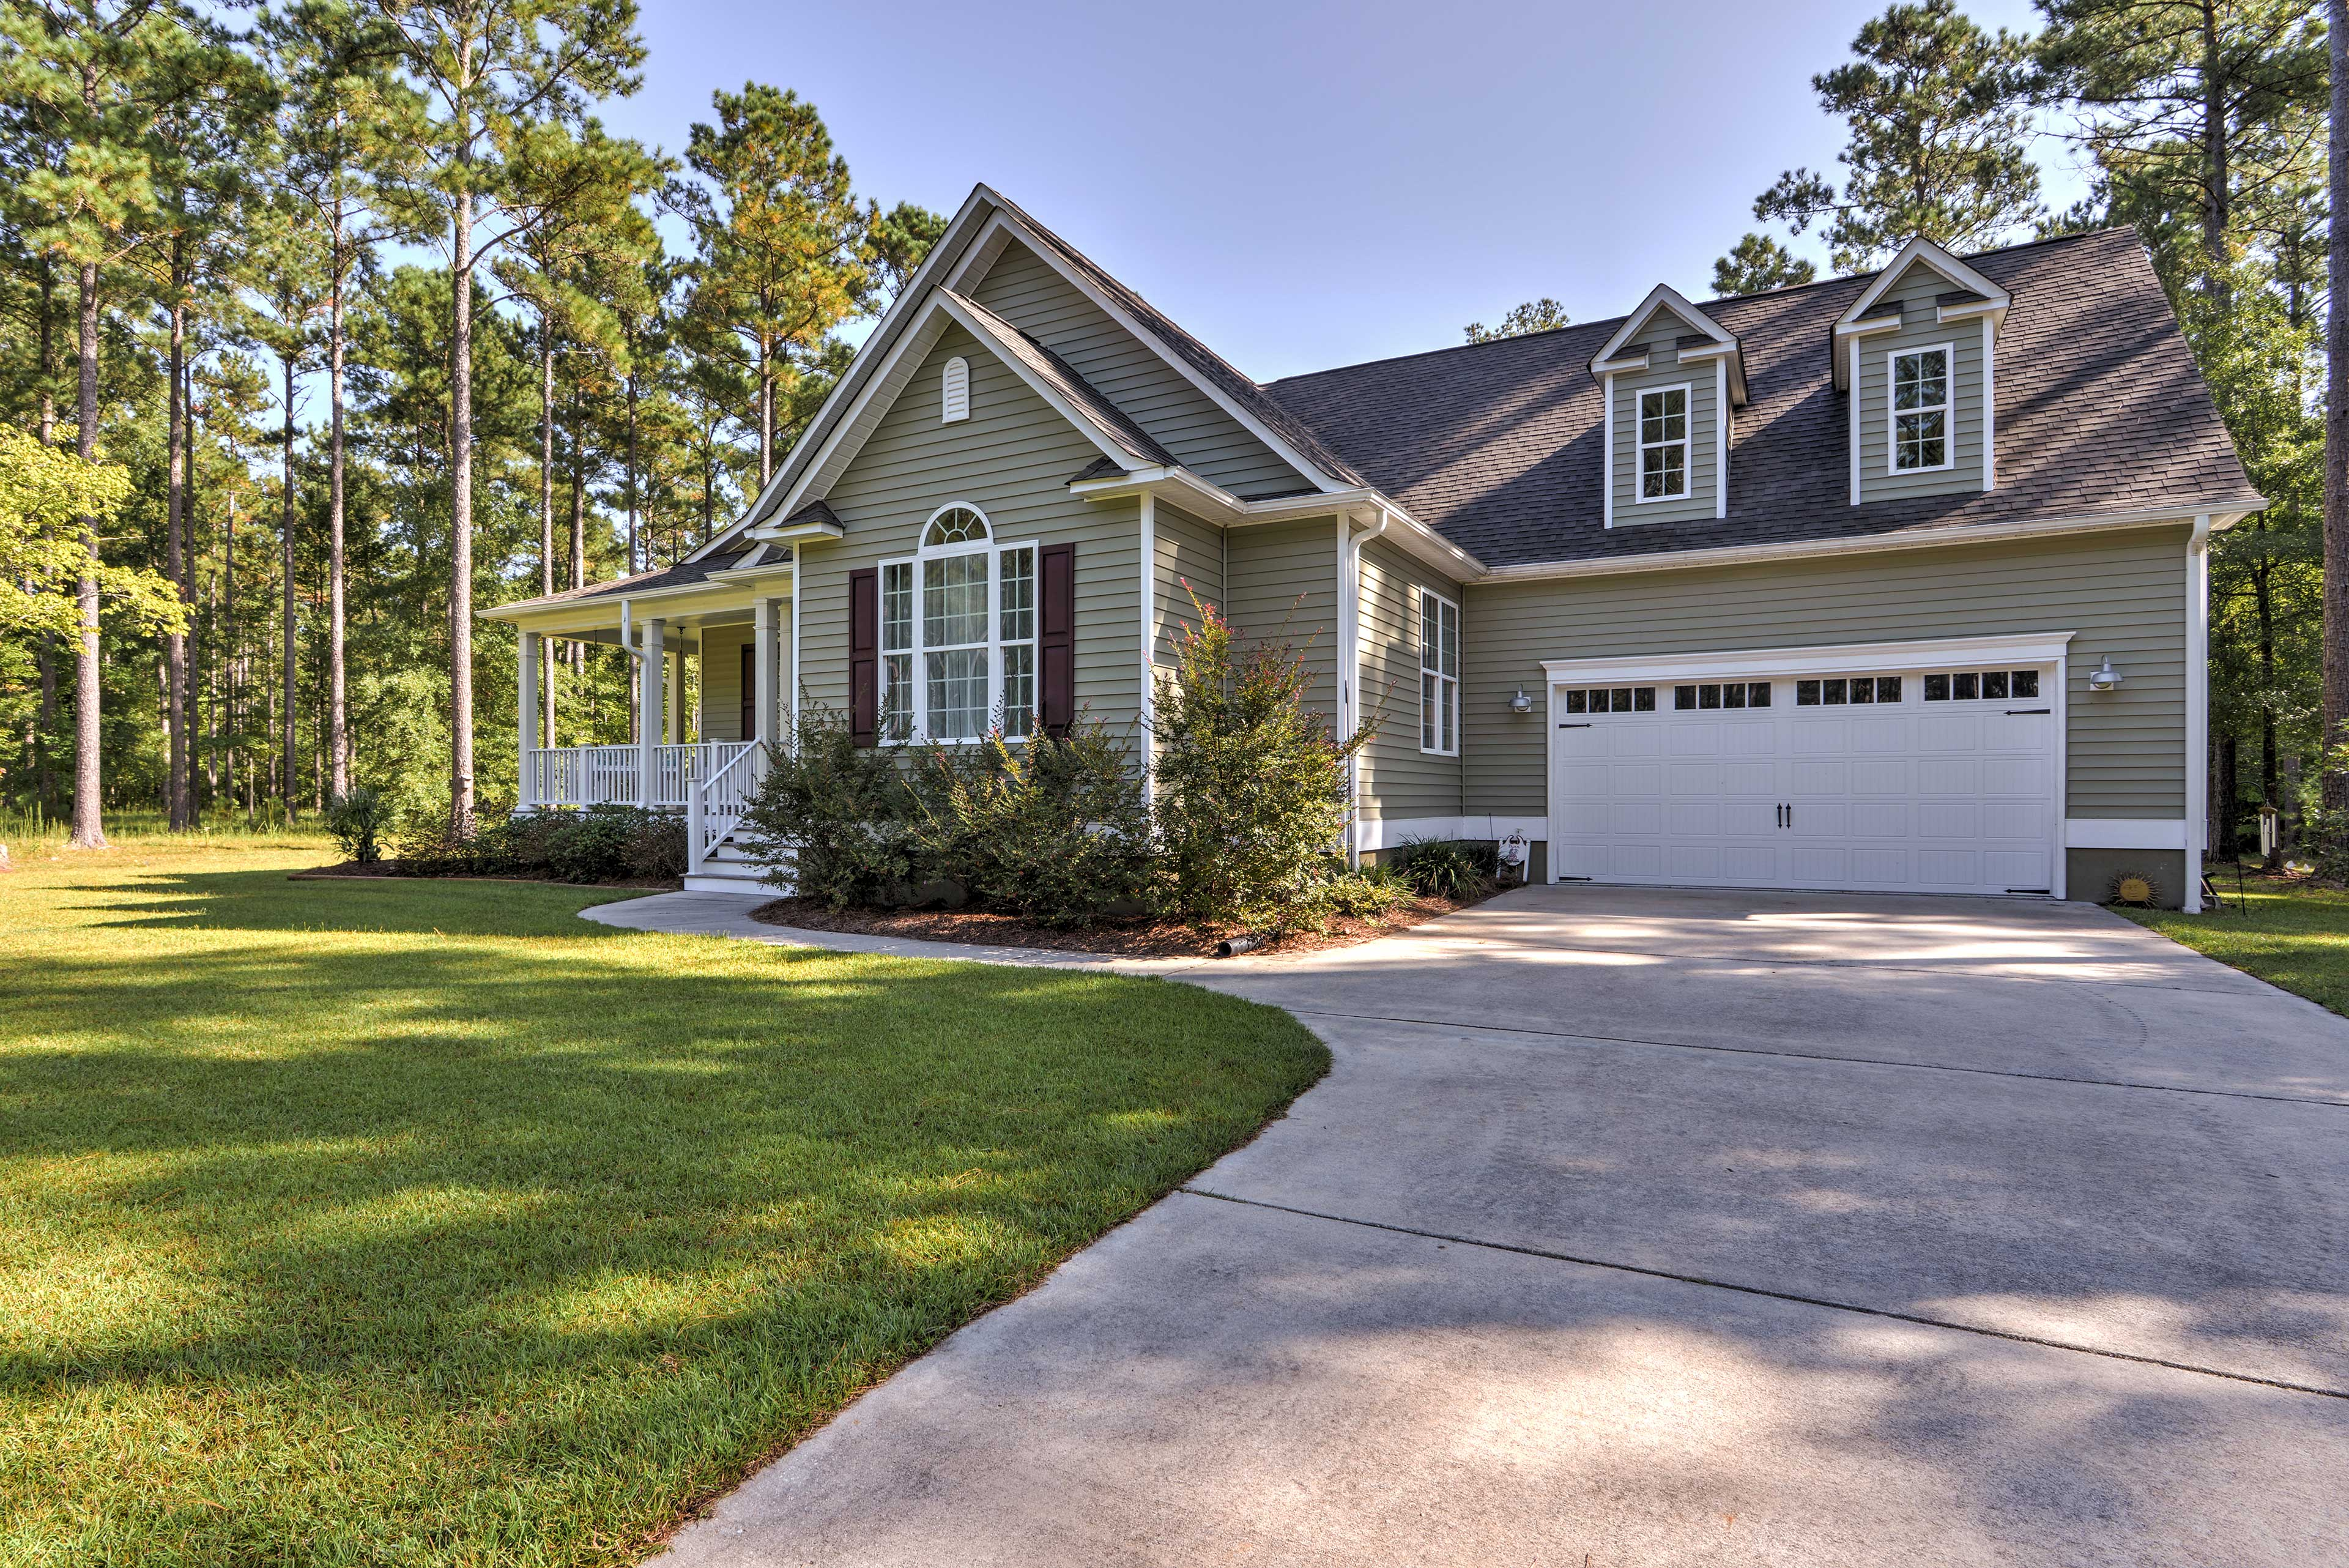 This North Carolina home is perfect for families wanting a peaceful vacation.